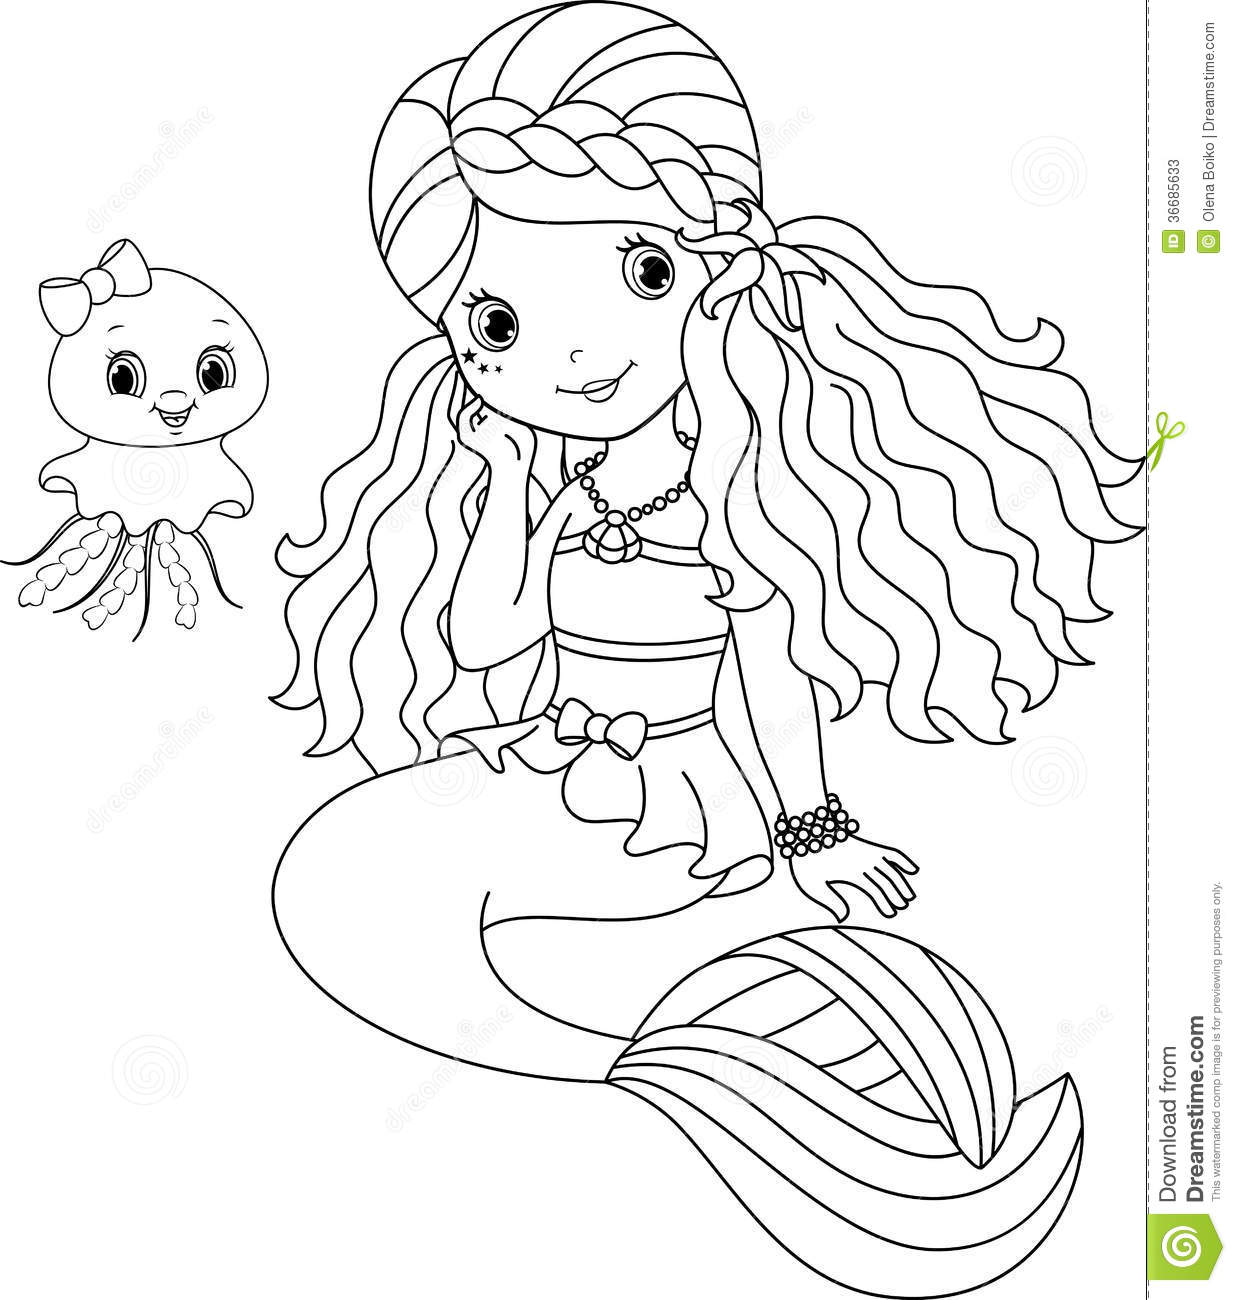 1236x1300 Unique Cute Mermaid Coloring Pages 49 With Additional For Page